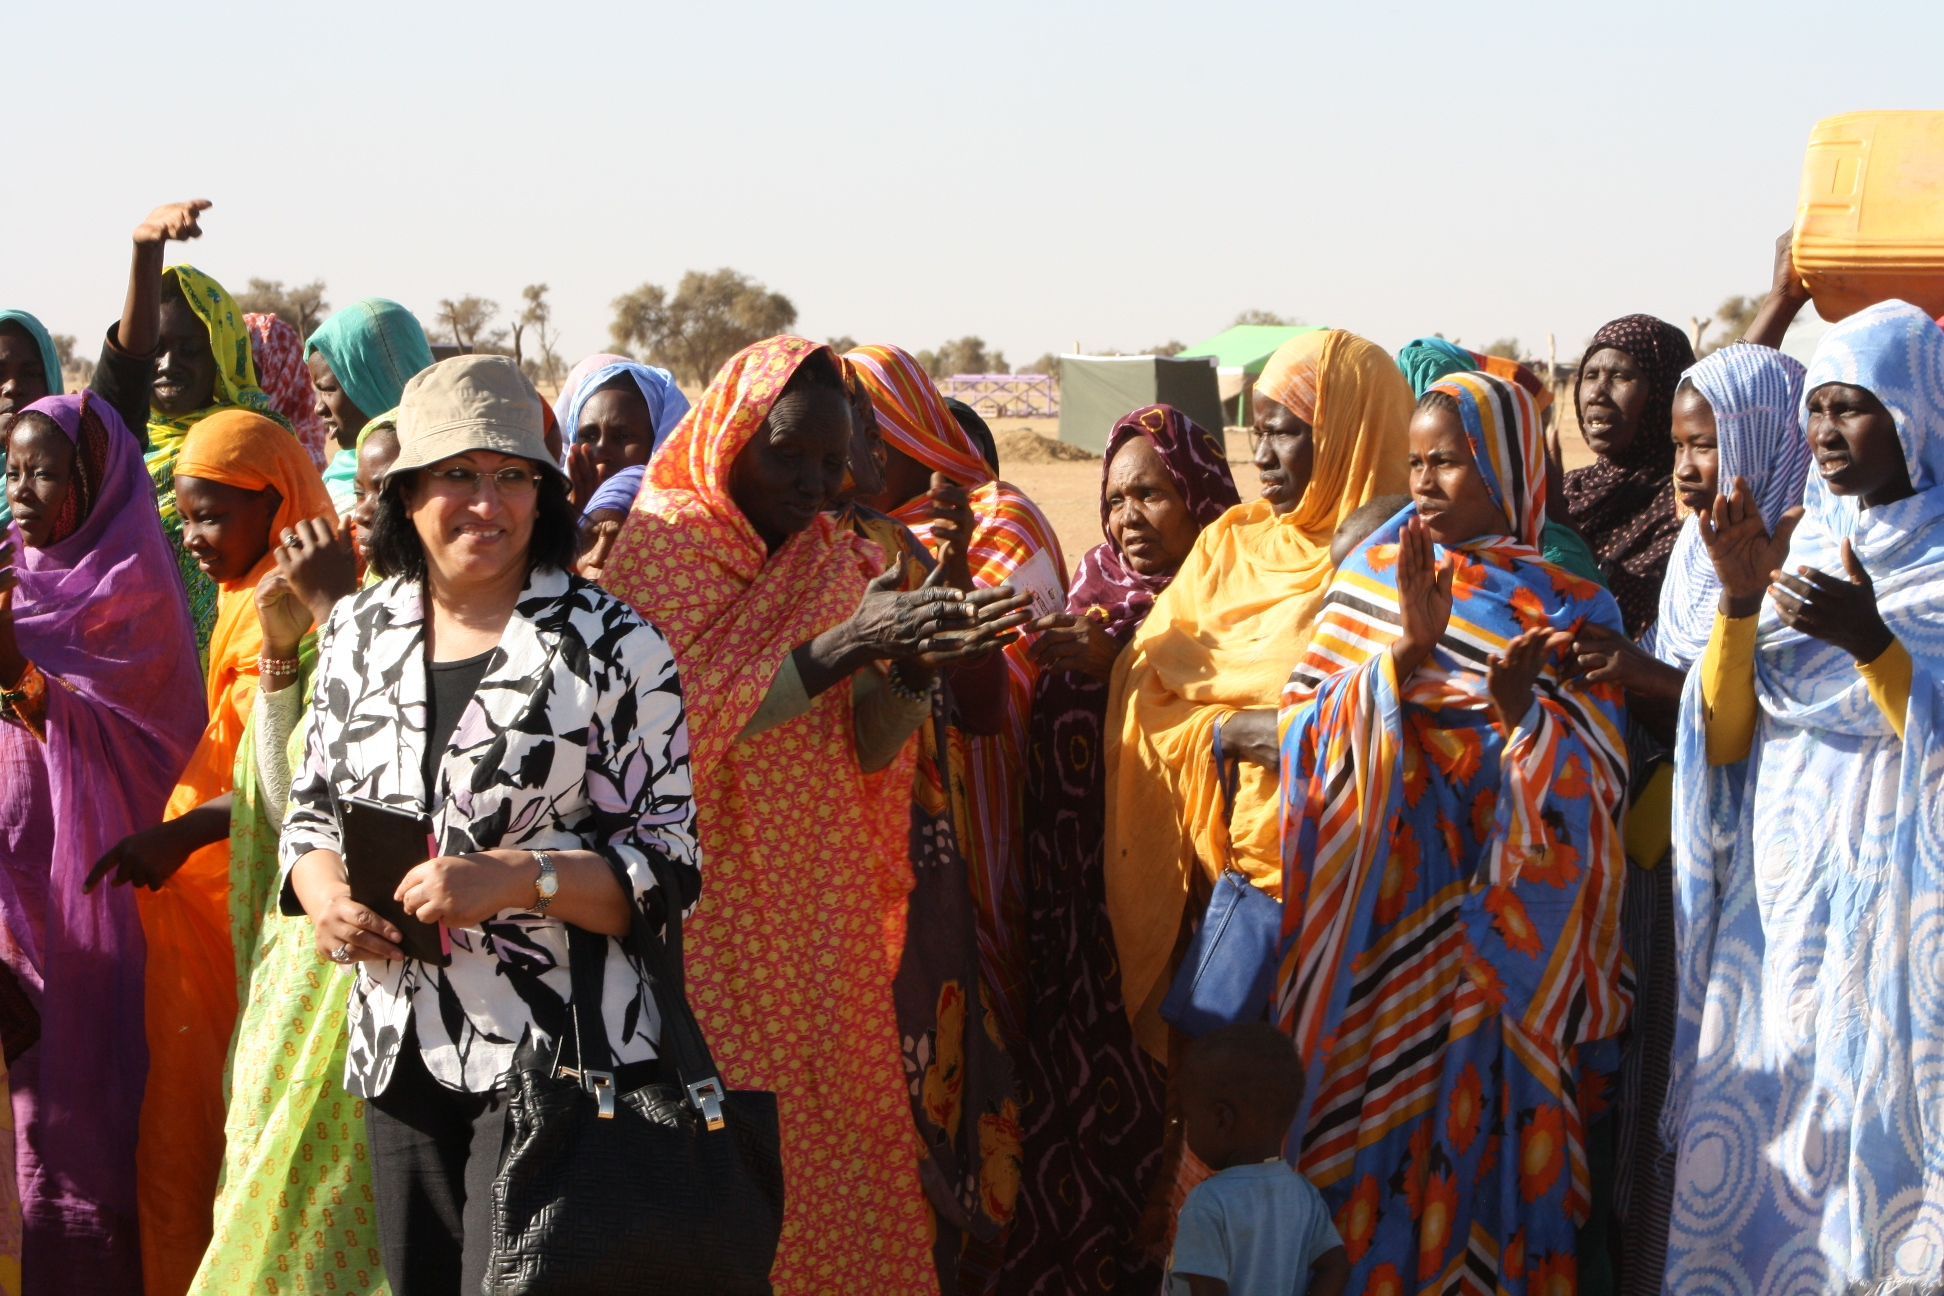 Mme Faeqa Saeed Al-Saleh, Joint General Secretary and Head of Social Affairs at the League of Arab States, with women in the village of Beydia Taboyett, in Brakna, Mauritania, February 2014.